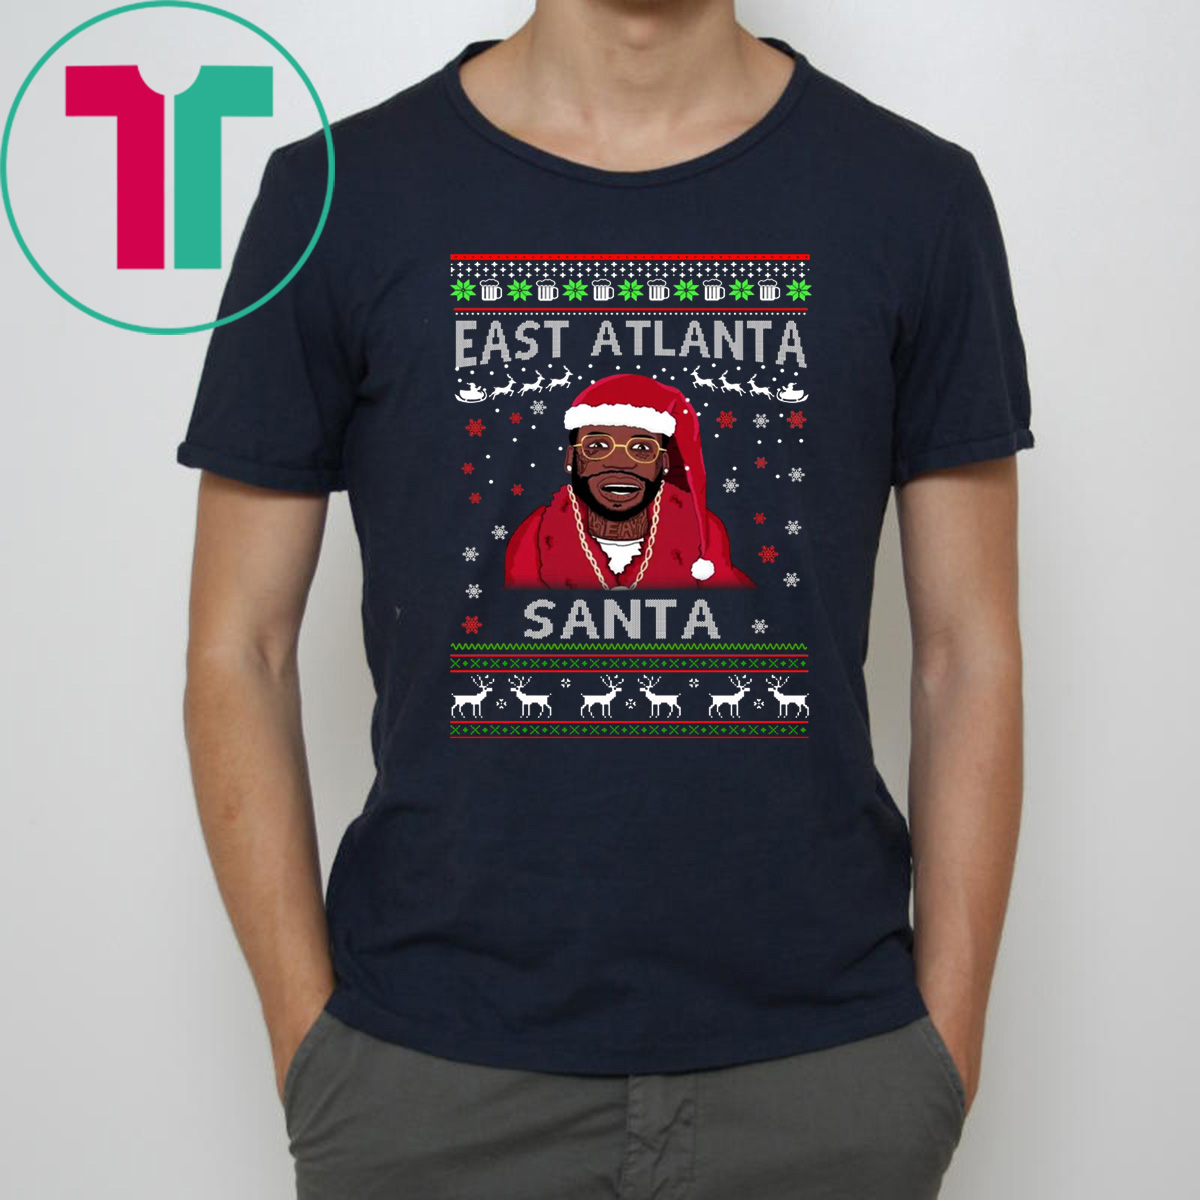 Gucci Mane Christmas.Gucci Mane East Atlanta Santa Christmas Sweater Tee Shirt